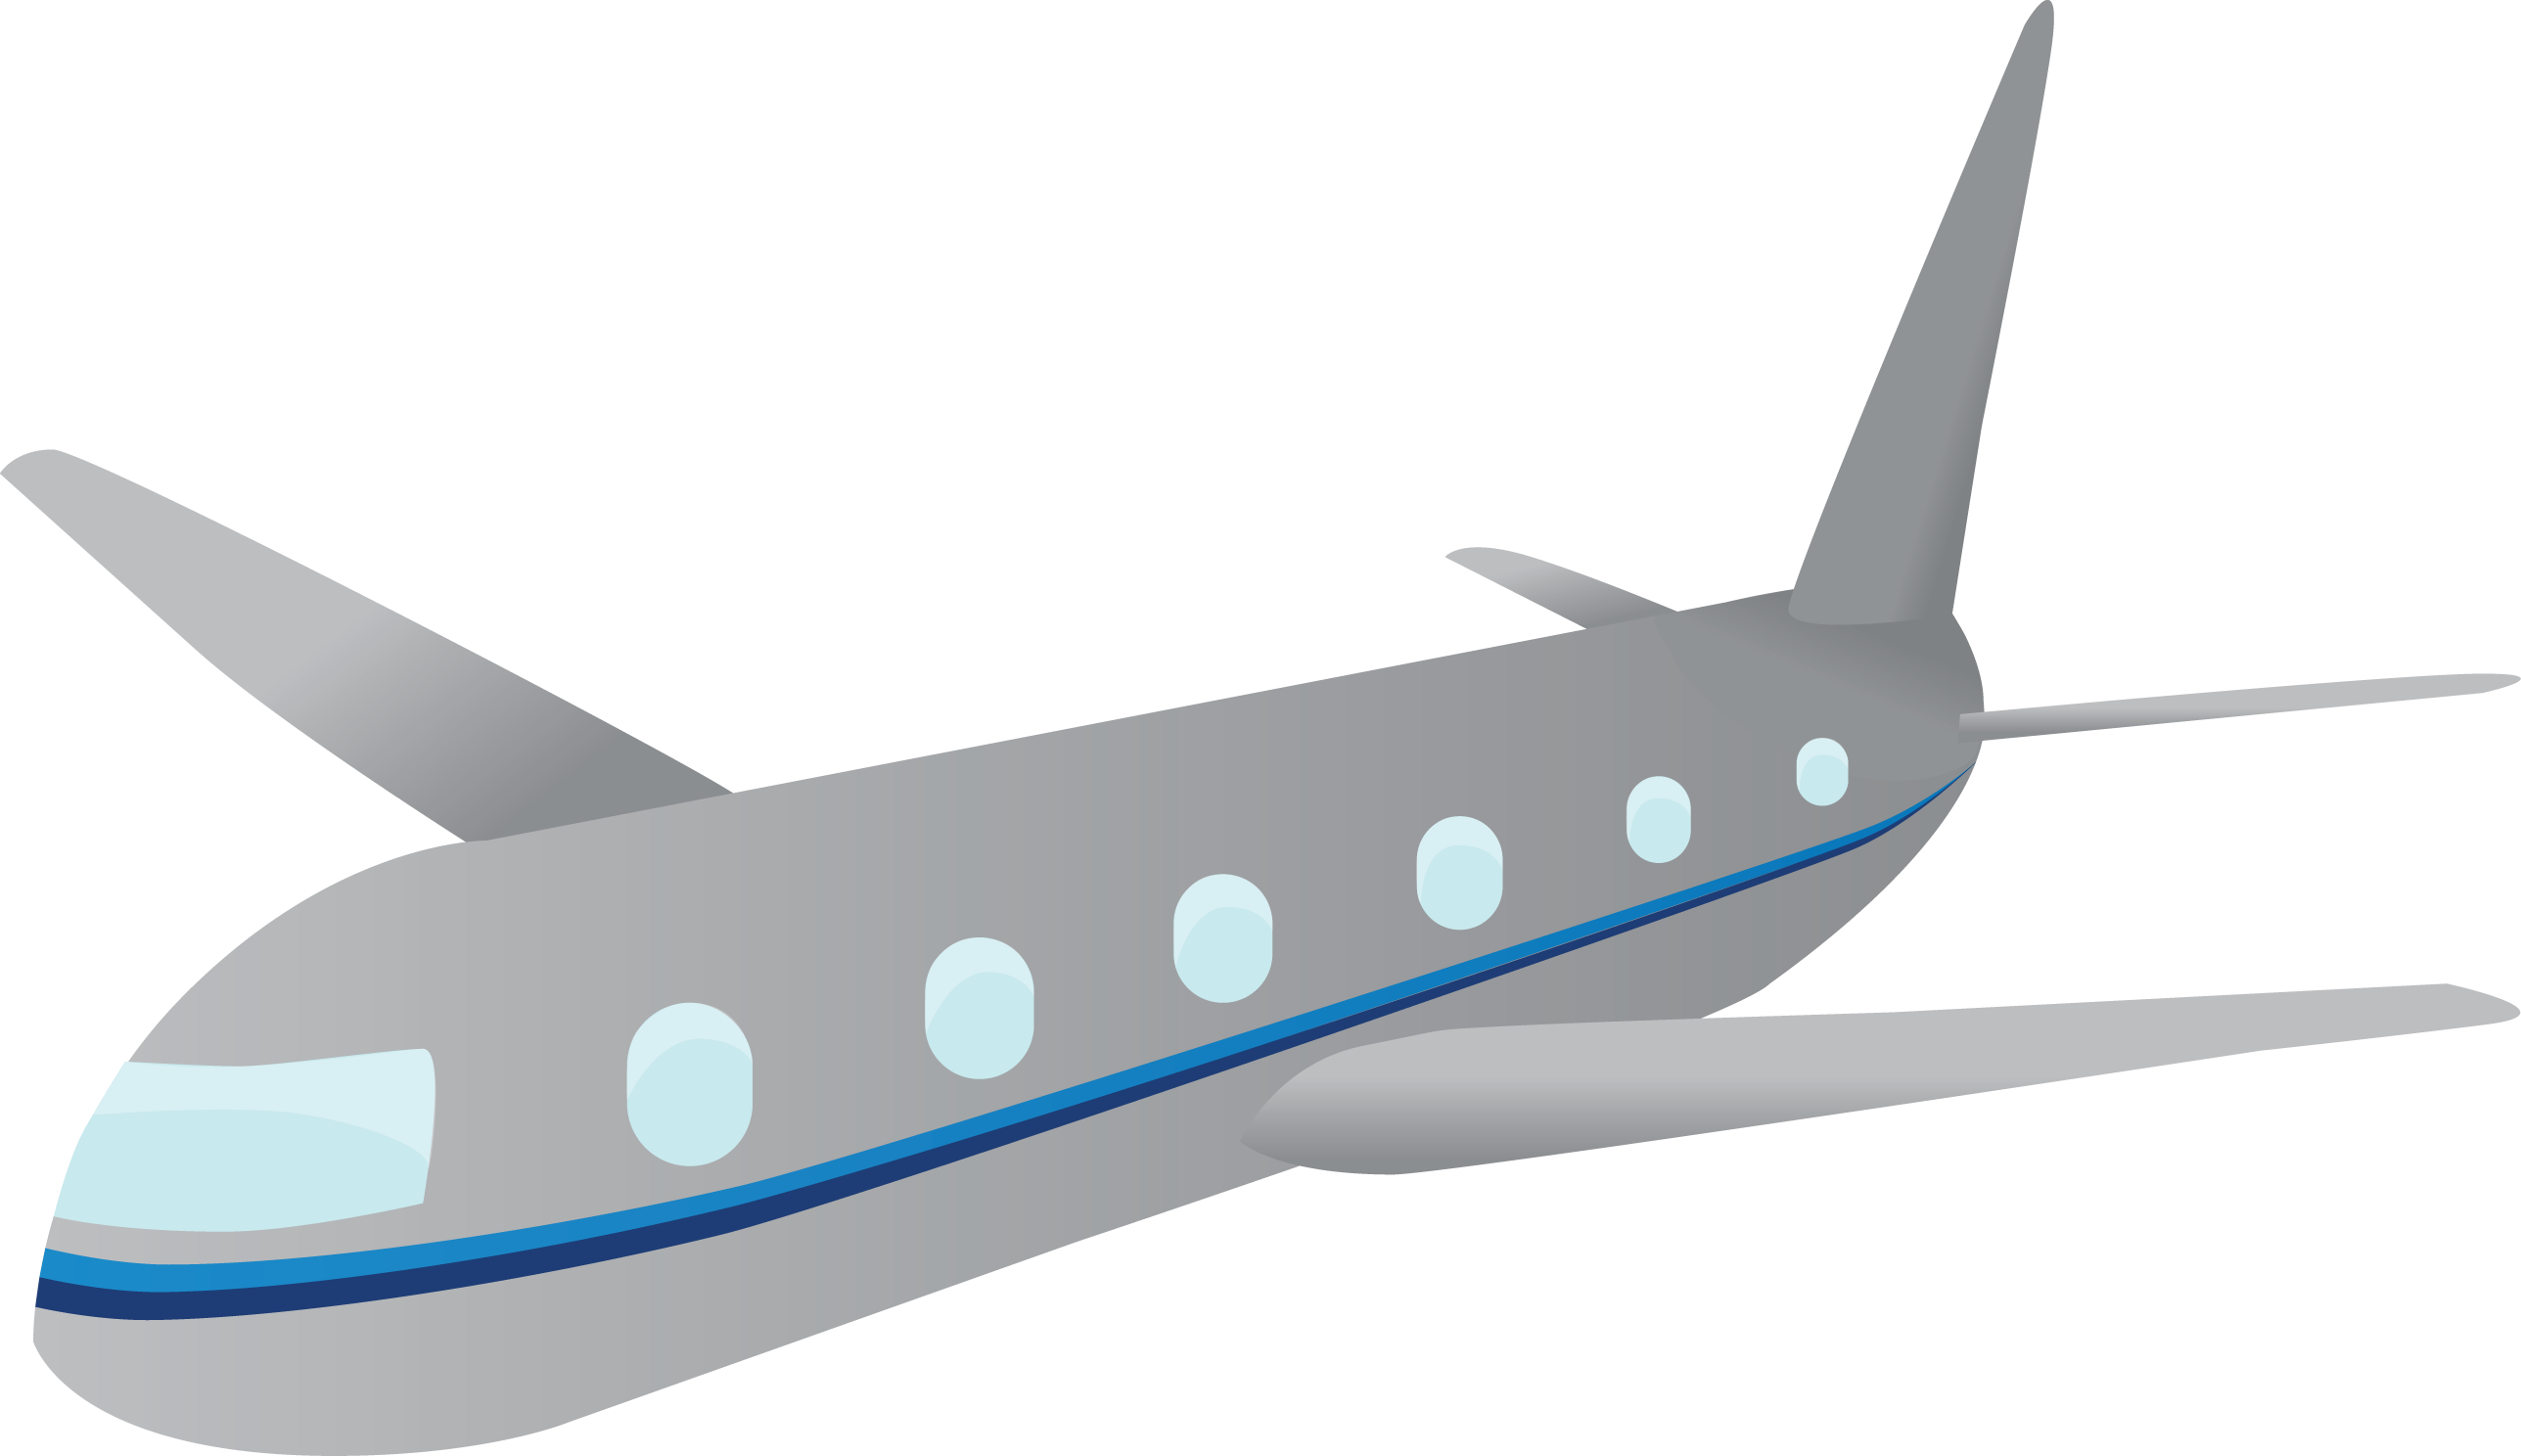 Airplane Vector Png image #27962